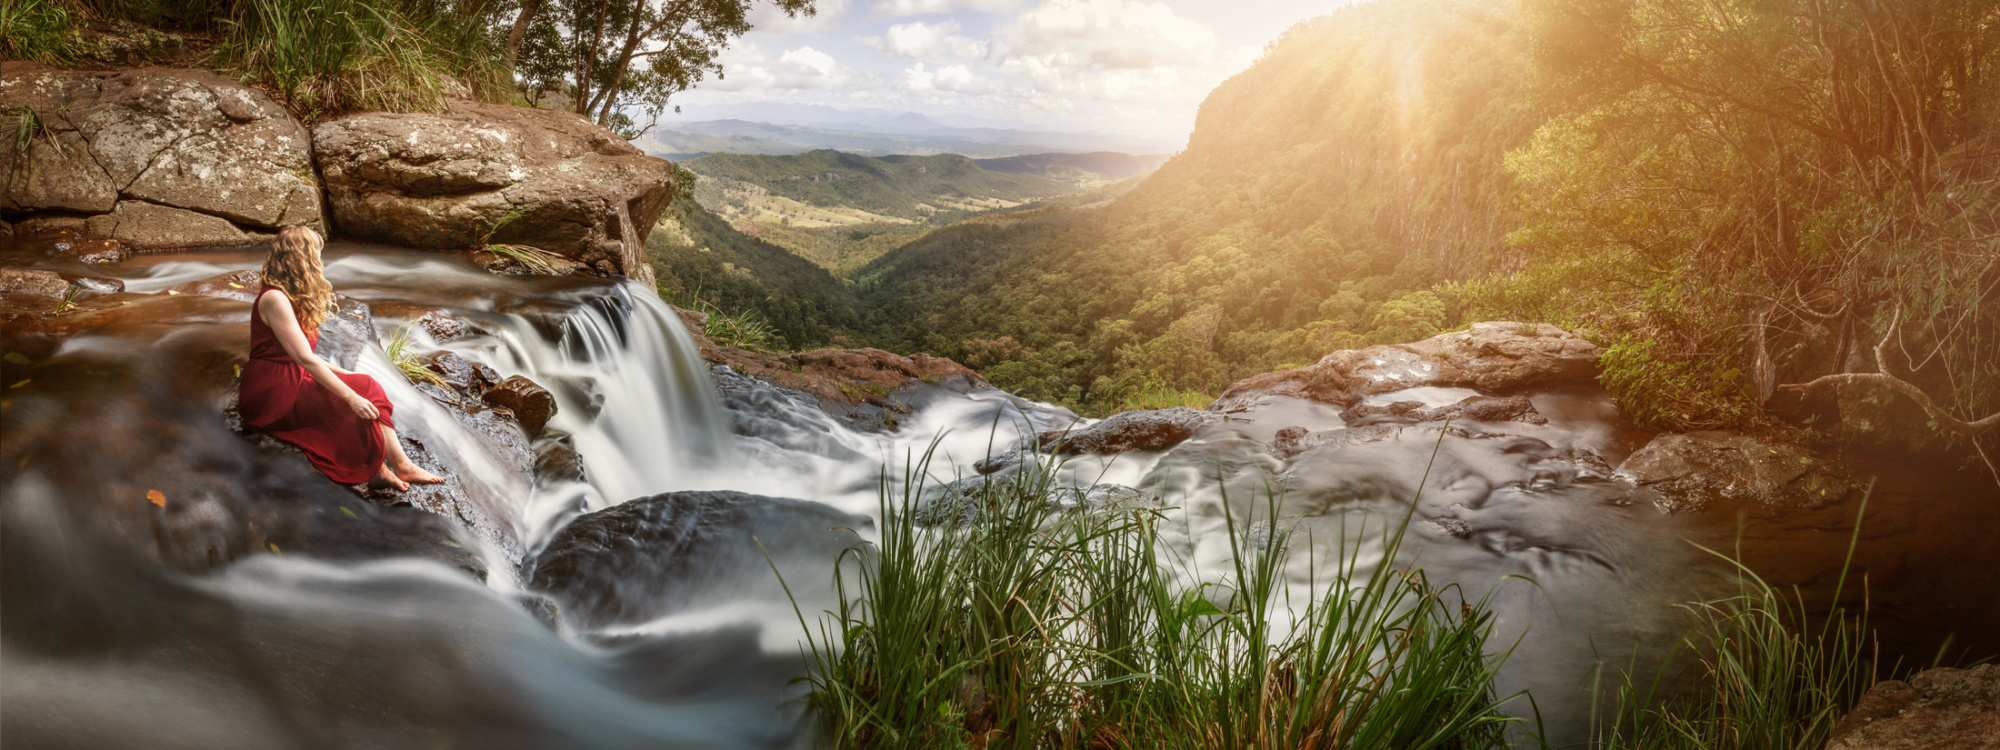 o'reilly's, rainforest, waterfall, morans falls, hiking, gold coast, lamington national park, queensland